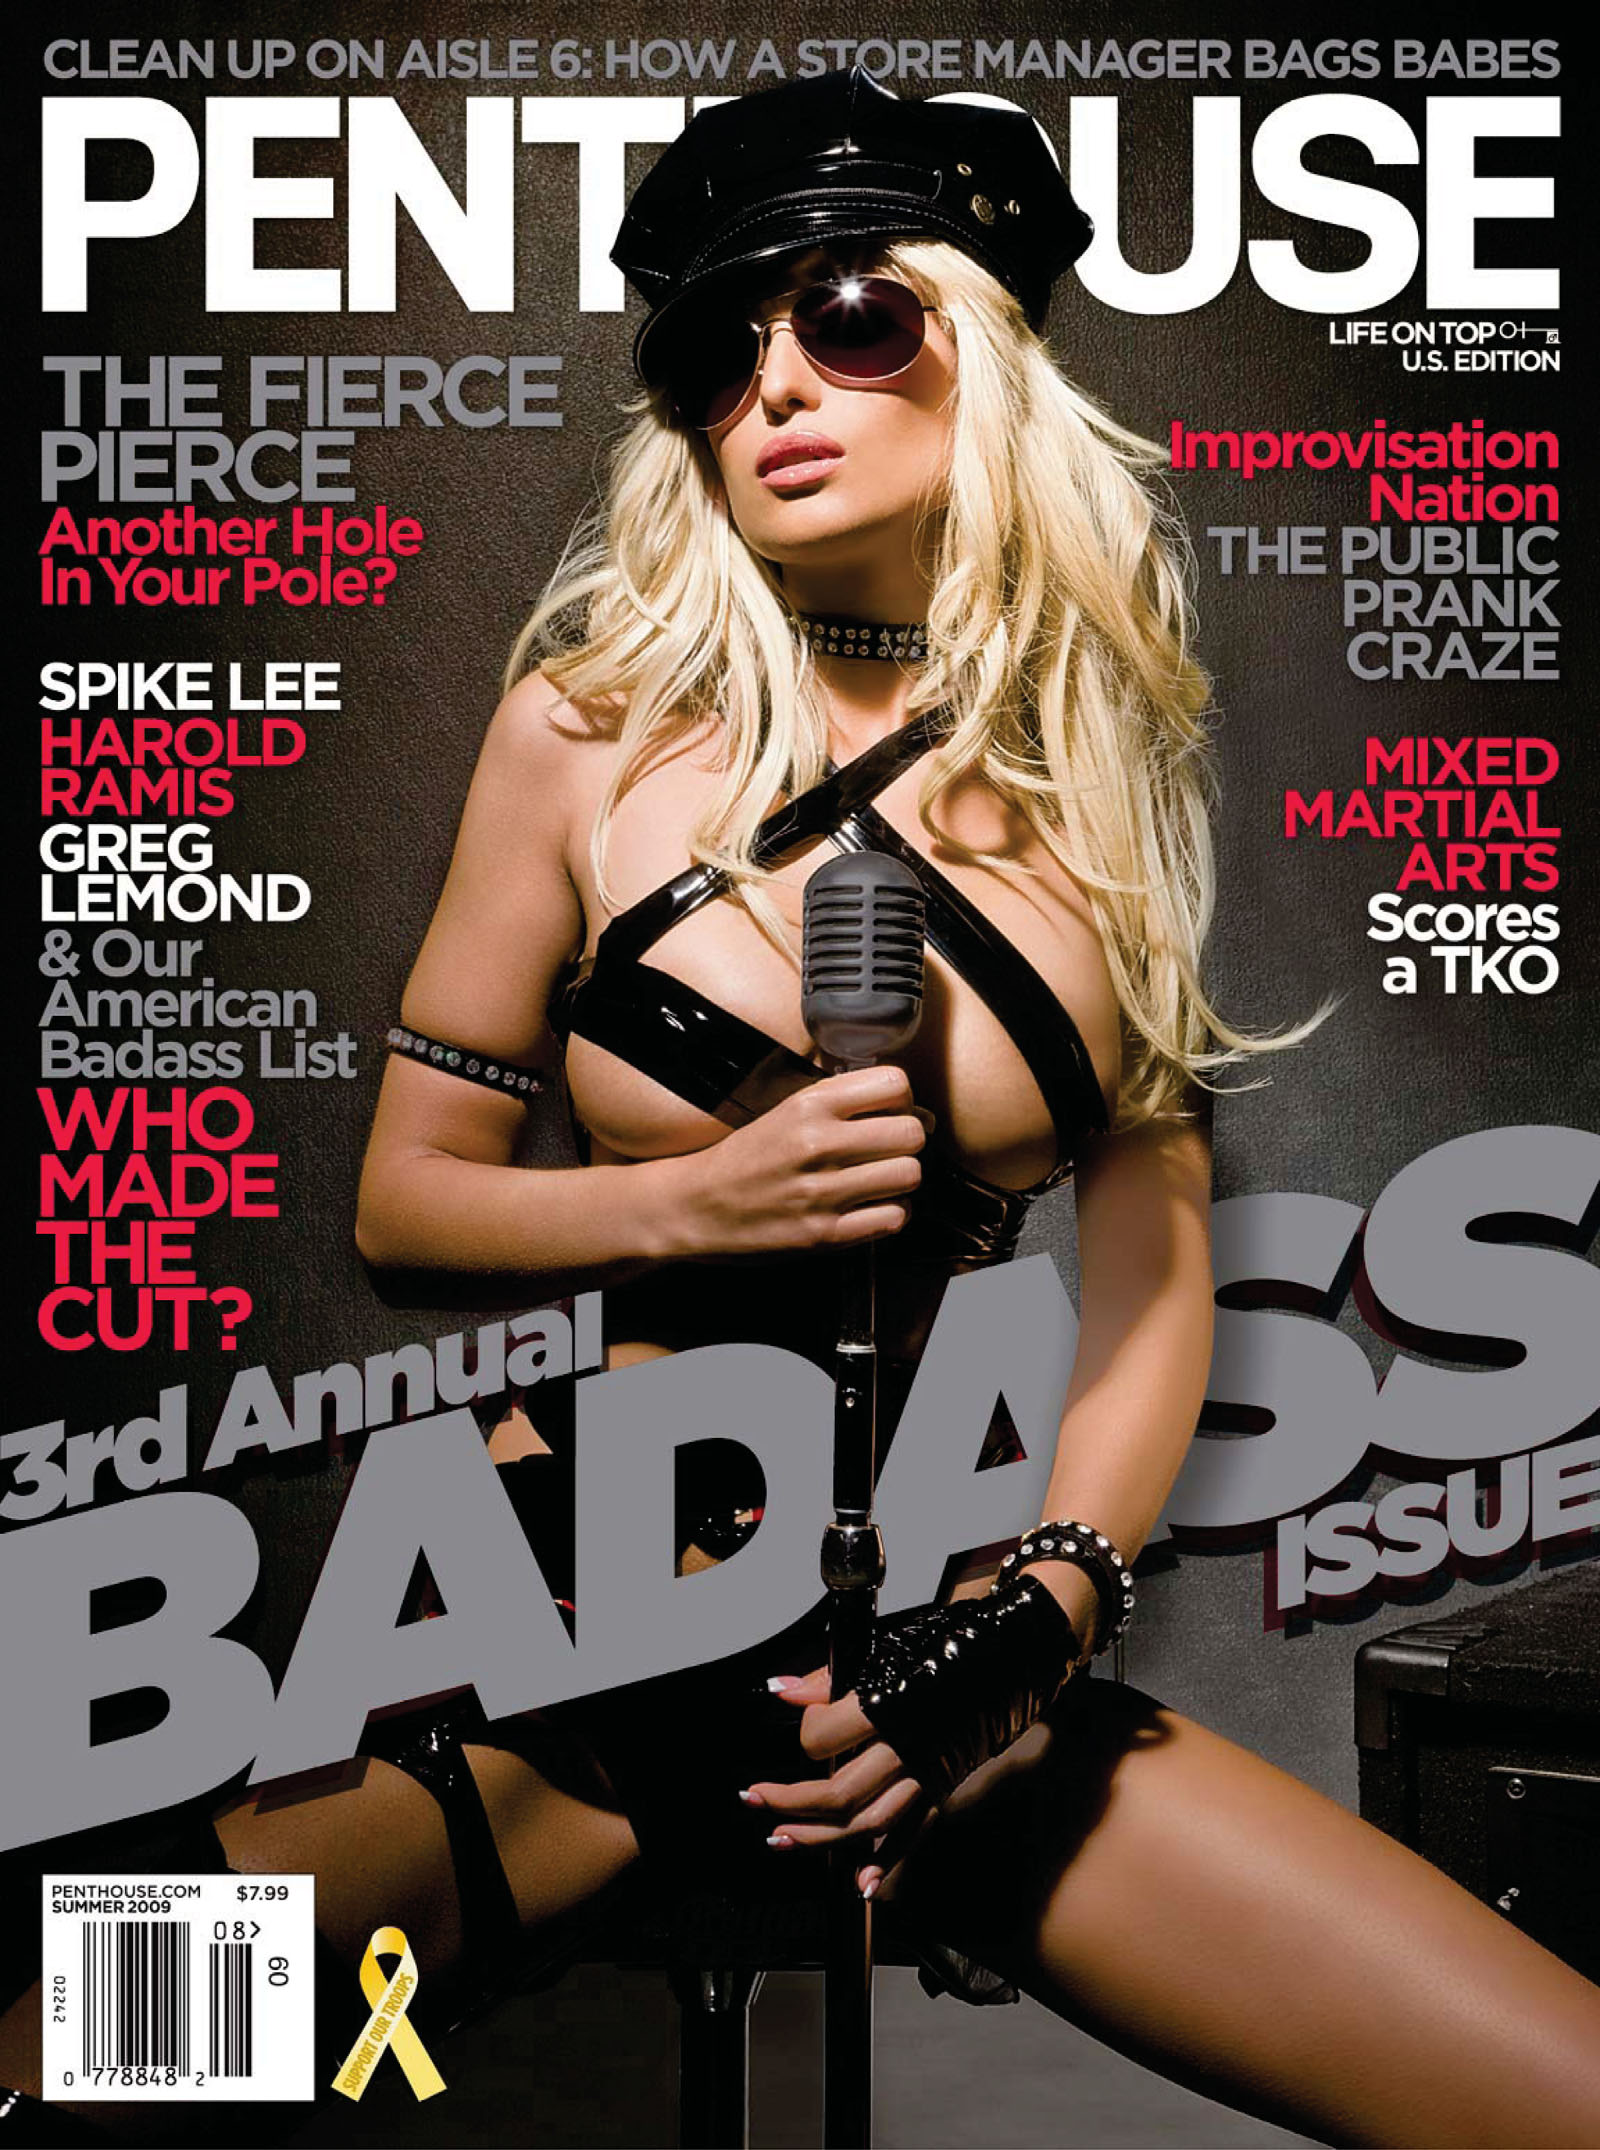 Penthouse USA - July / August 2009 free download